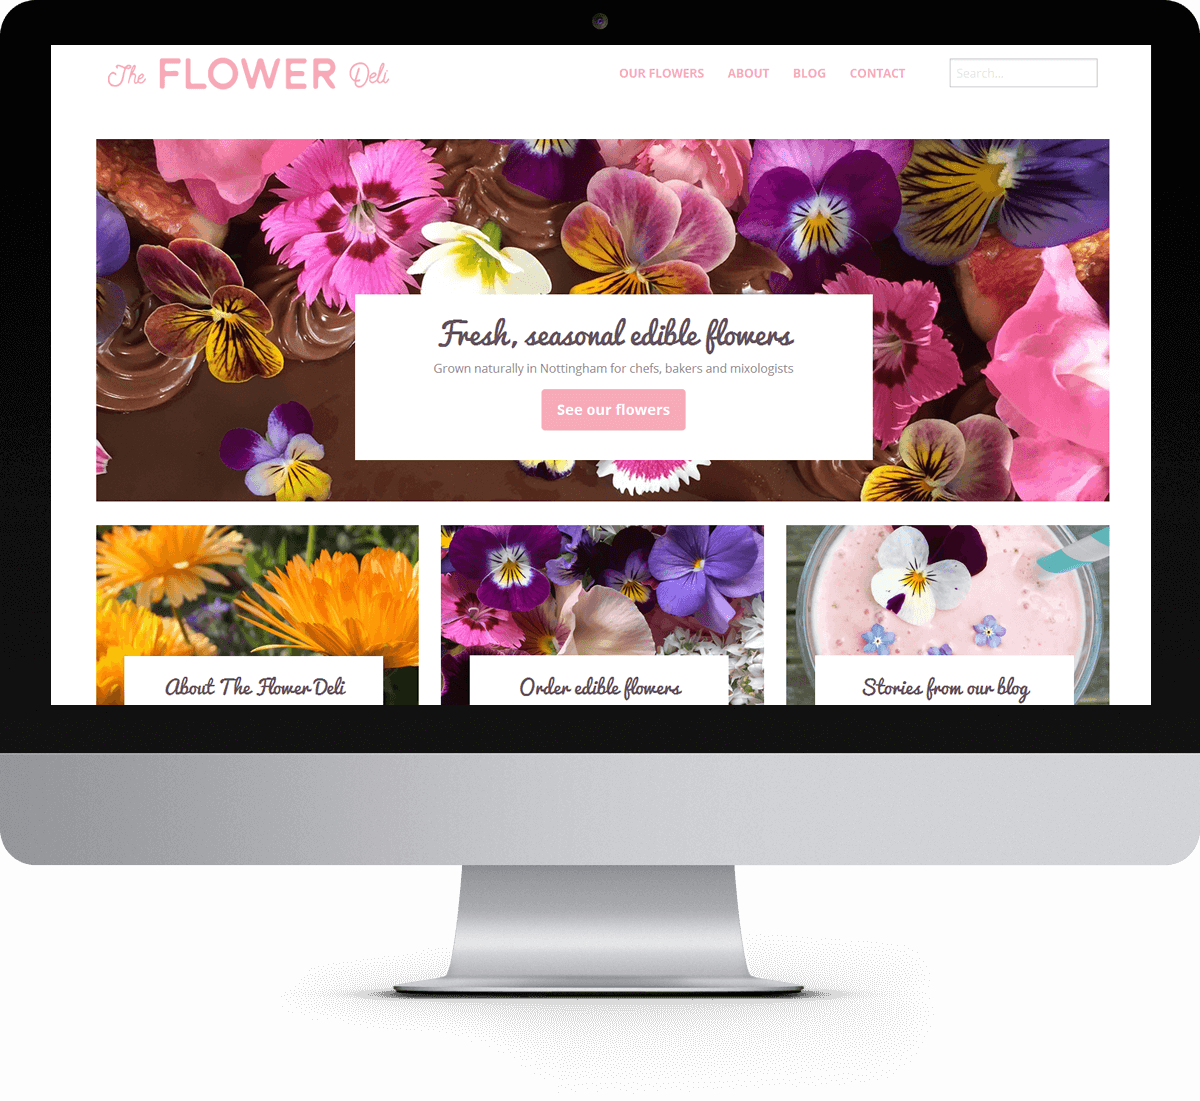 The Flower Deli website